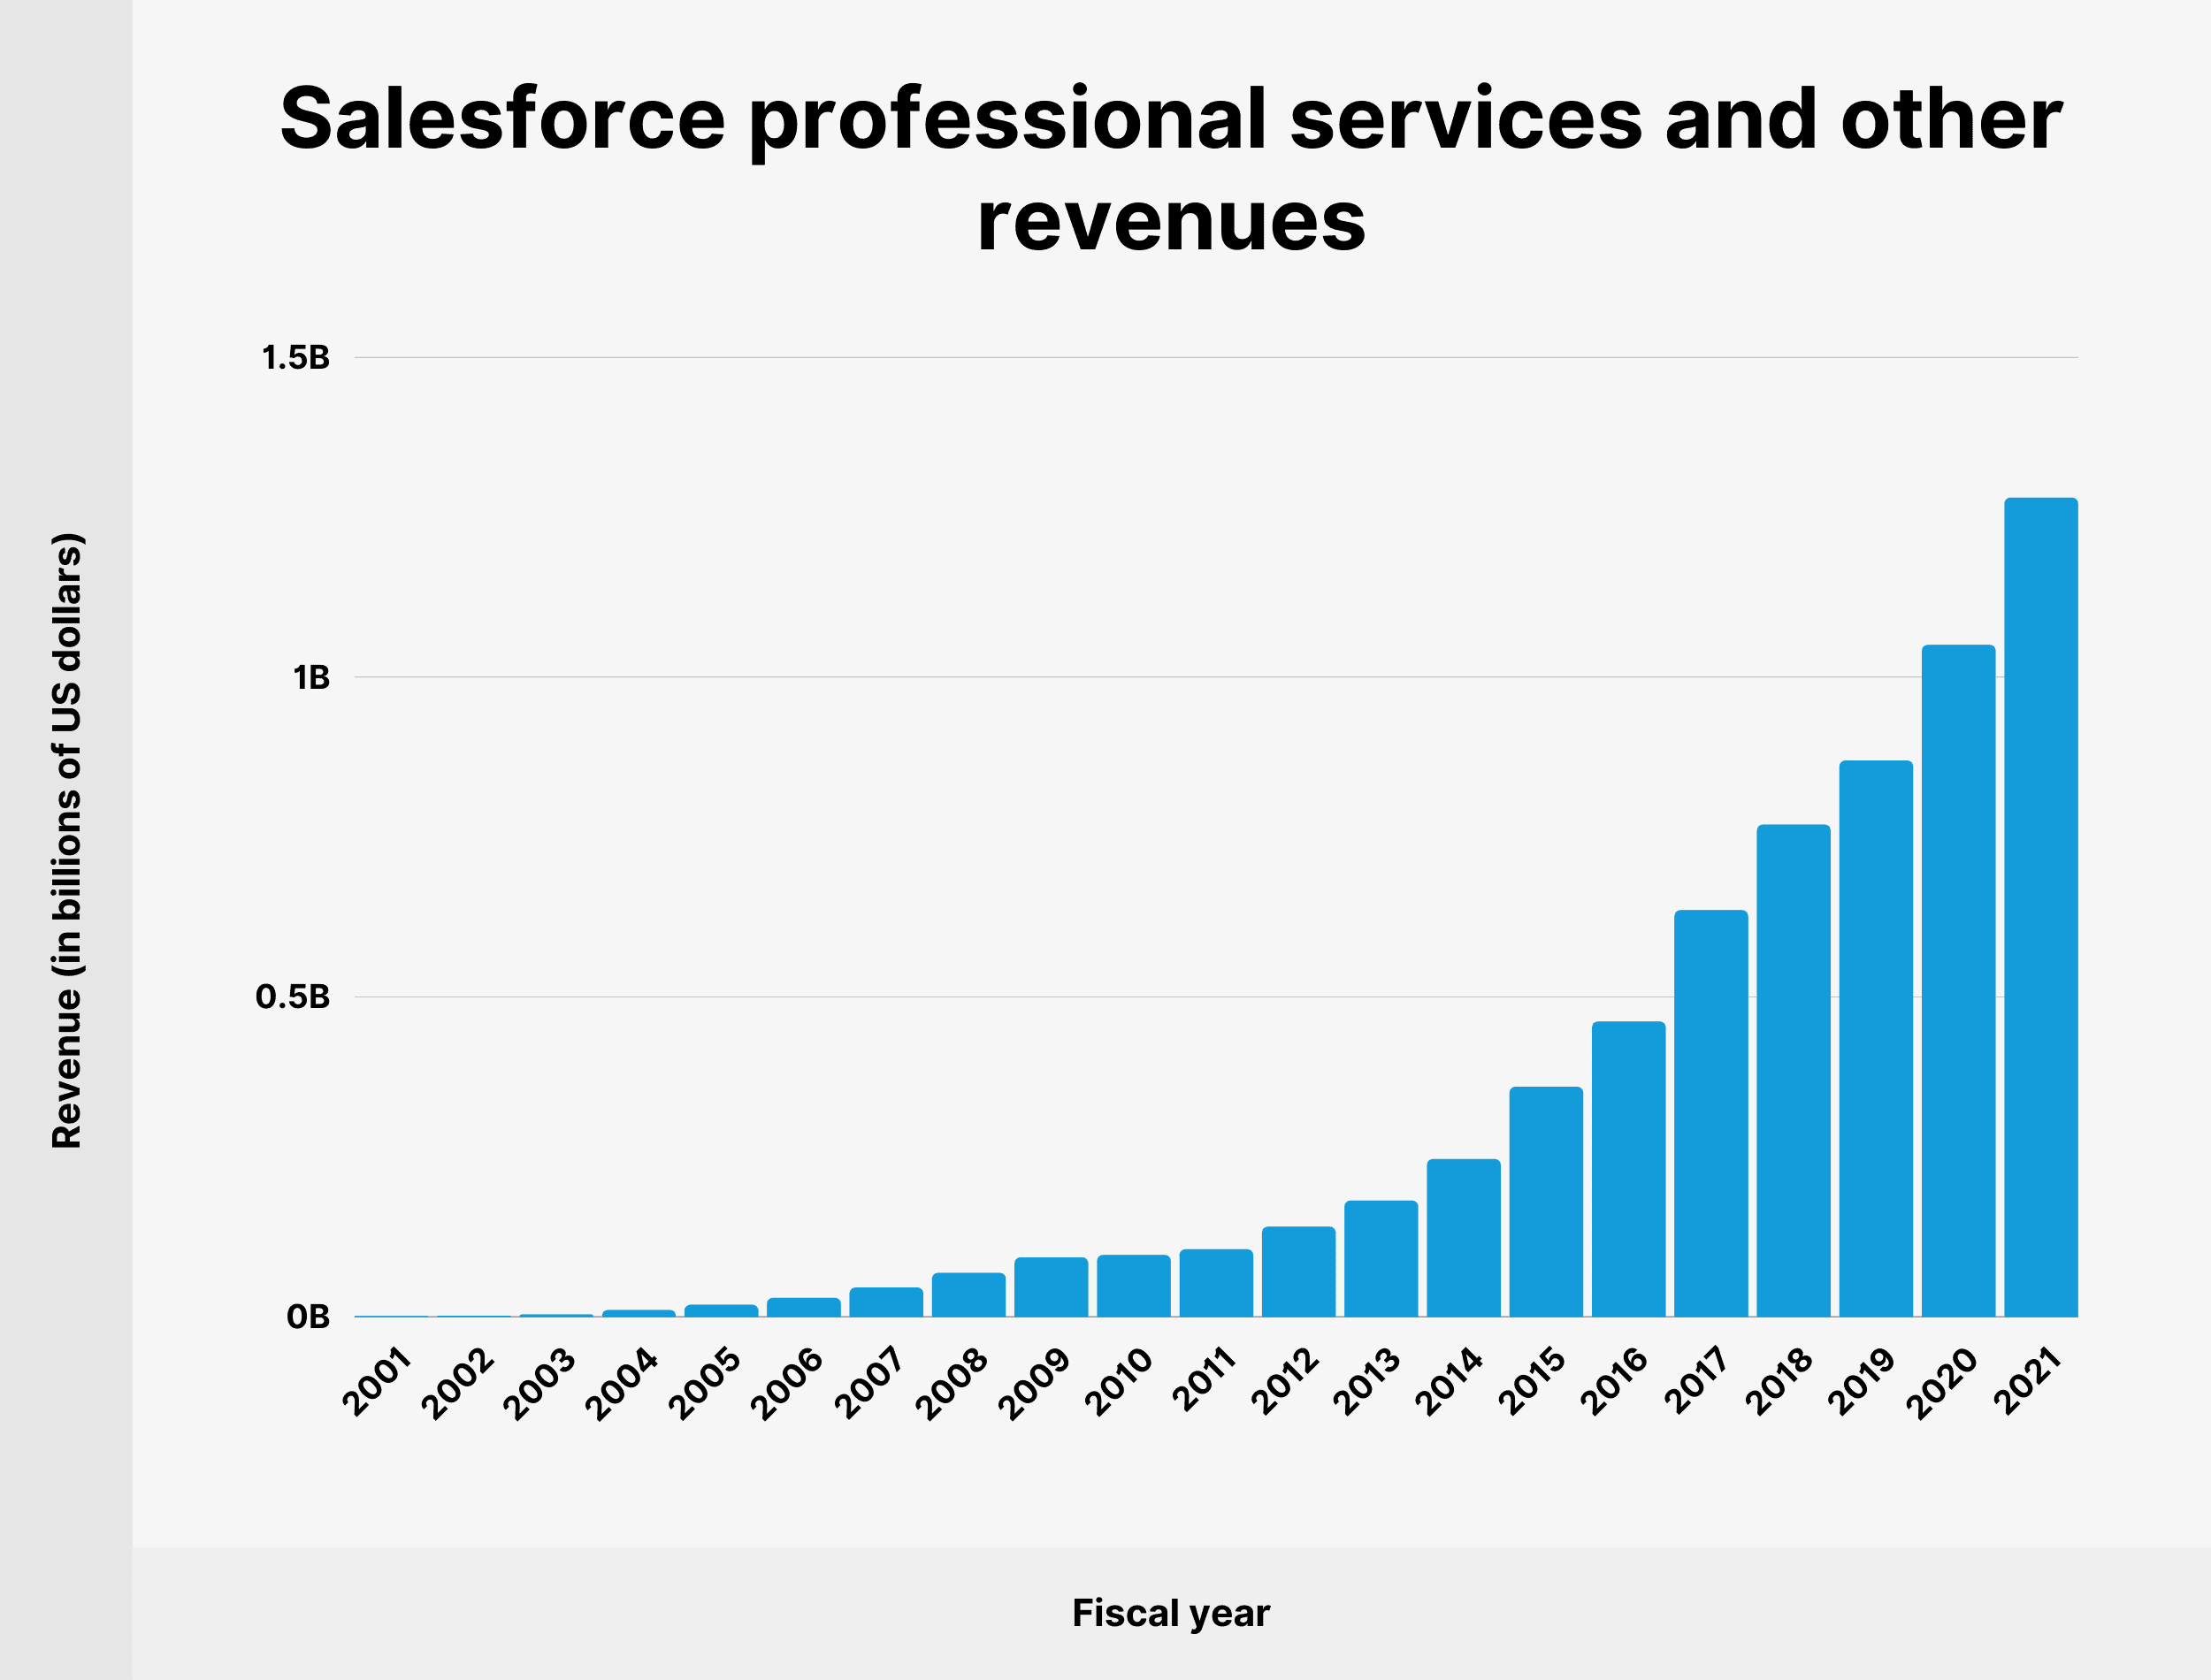 Salesforce professional services and other revenues